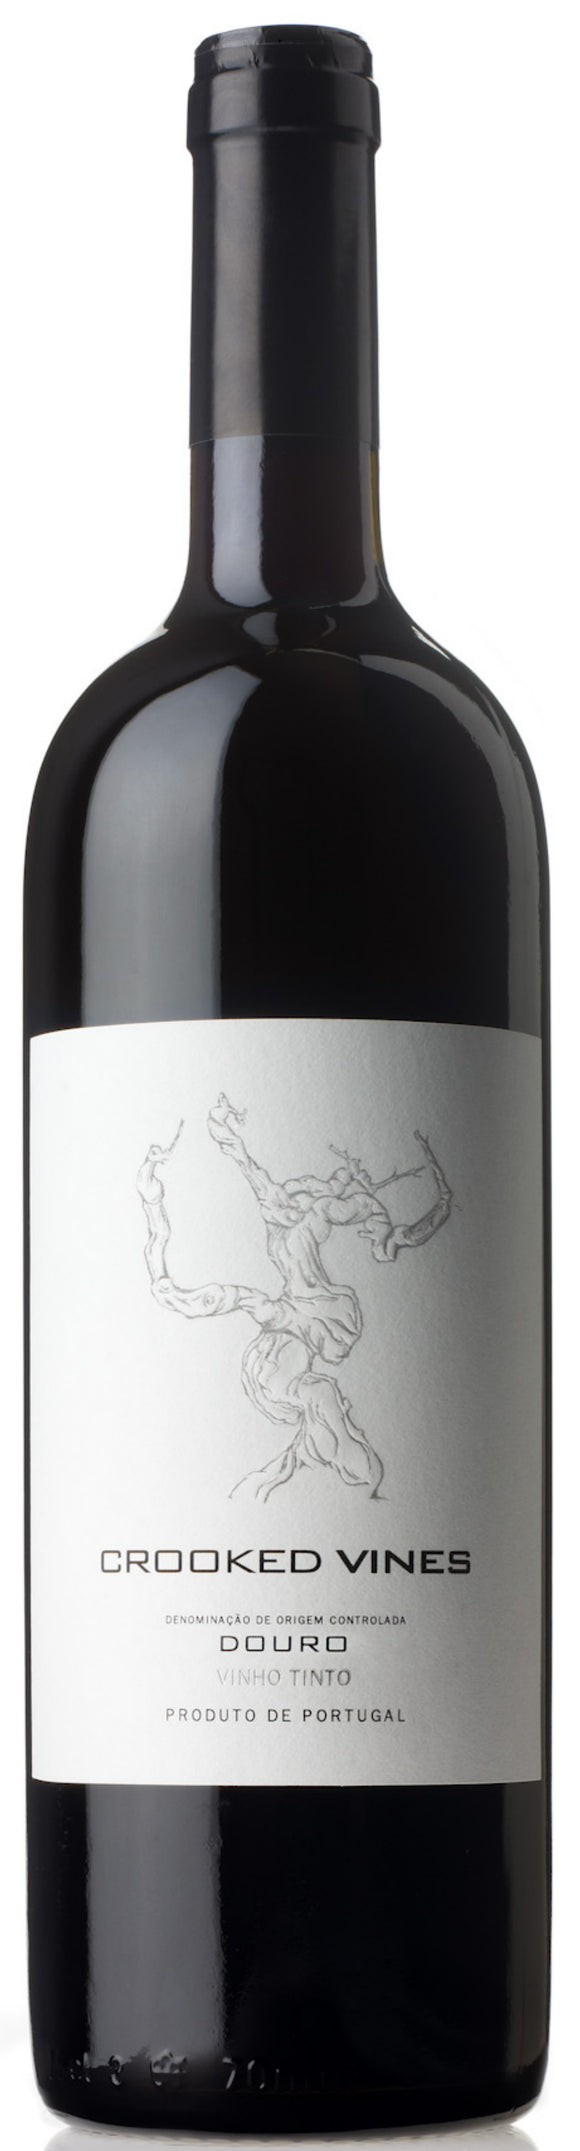 Crooked Vines Red Douro 2014